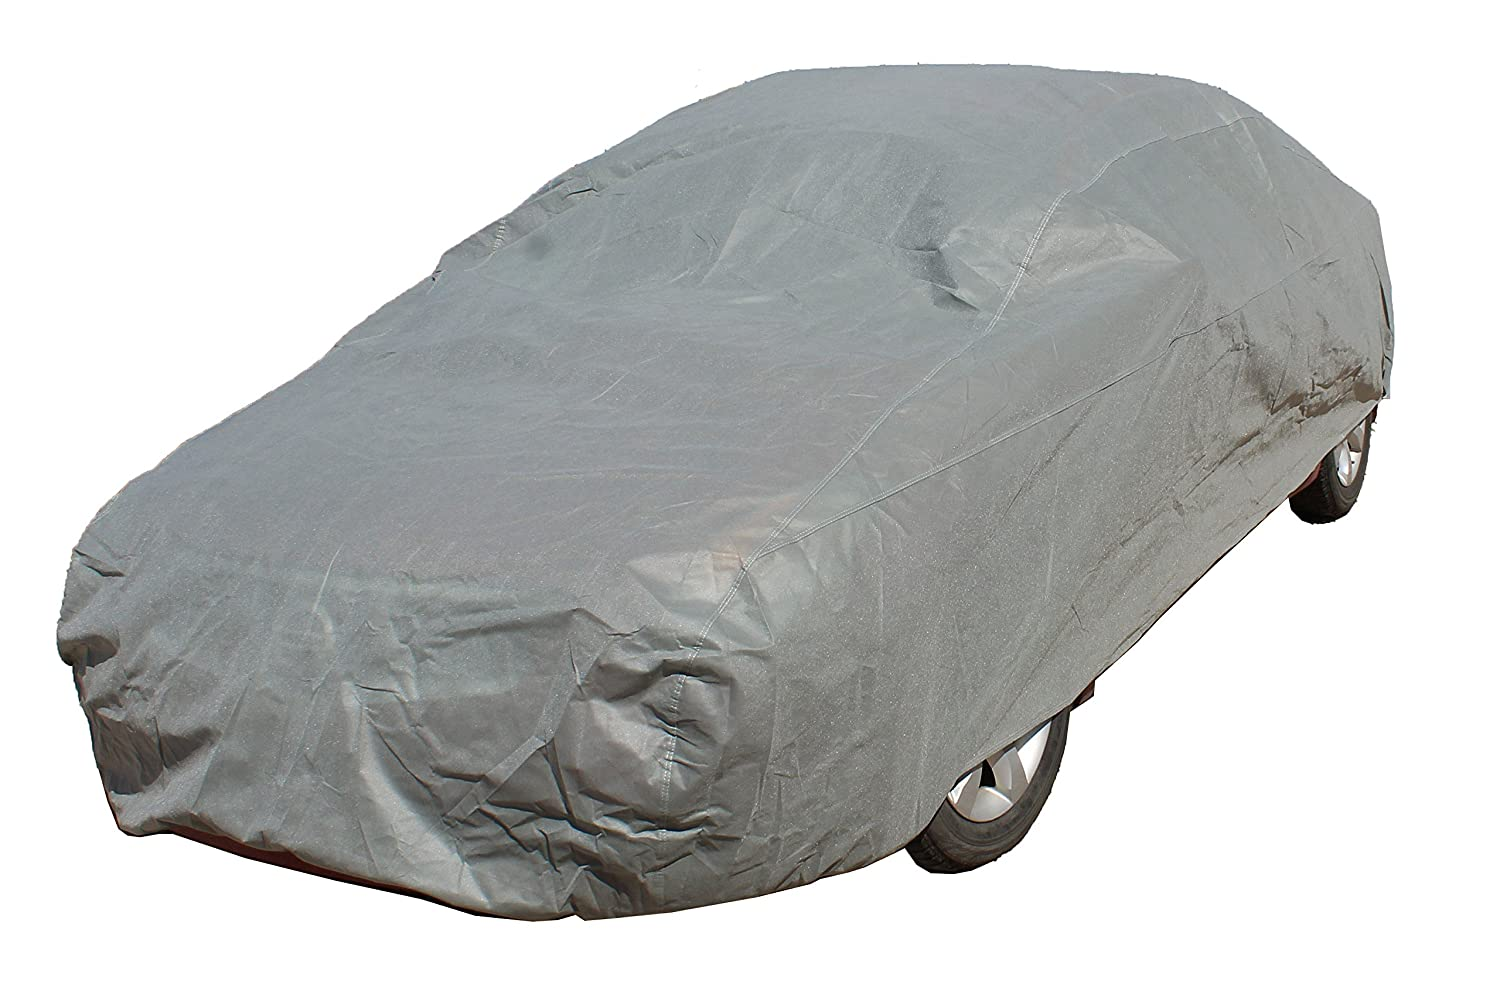 ABN Fabric Car Cover Non-Woven 170 x 65 x 47 Semi Custom Polypropylene Universal Fit for Indoor Use 4332979740